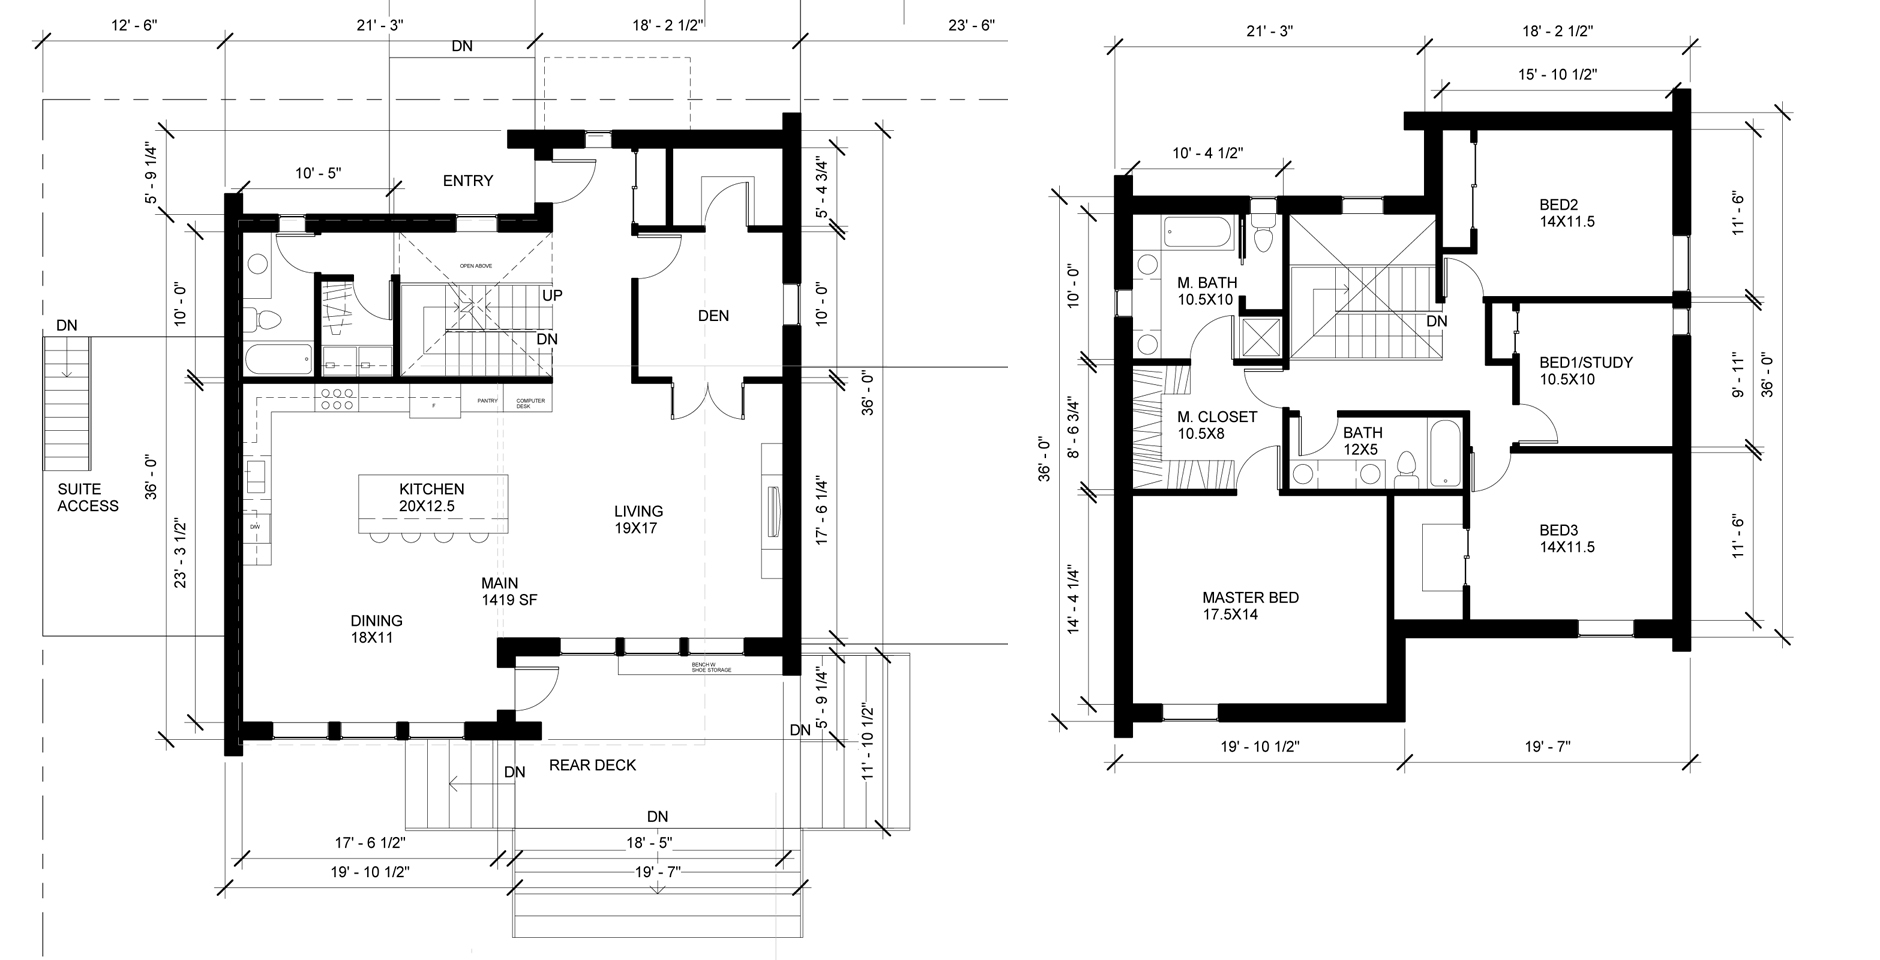 The 15 best passive house design plans house plans 72465 for Passive house floor plans